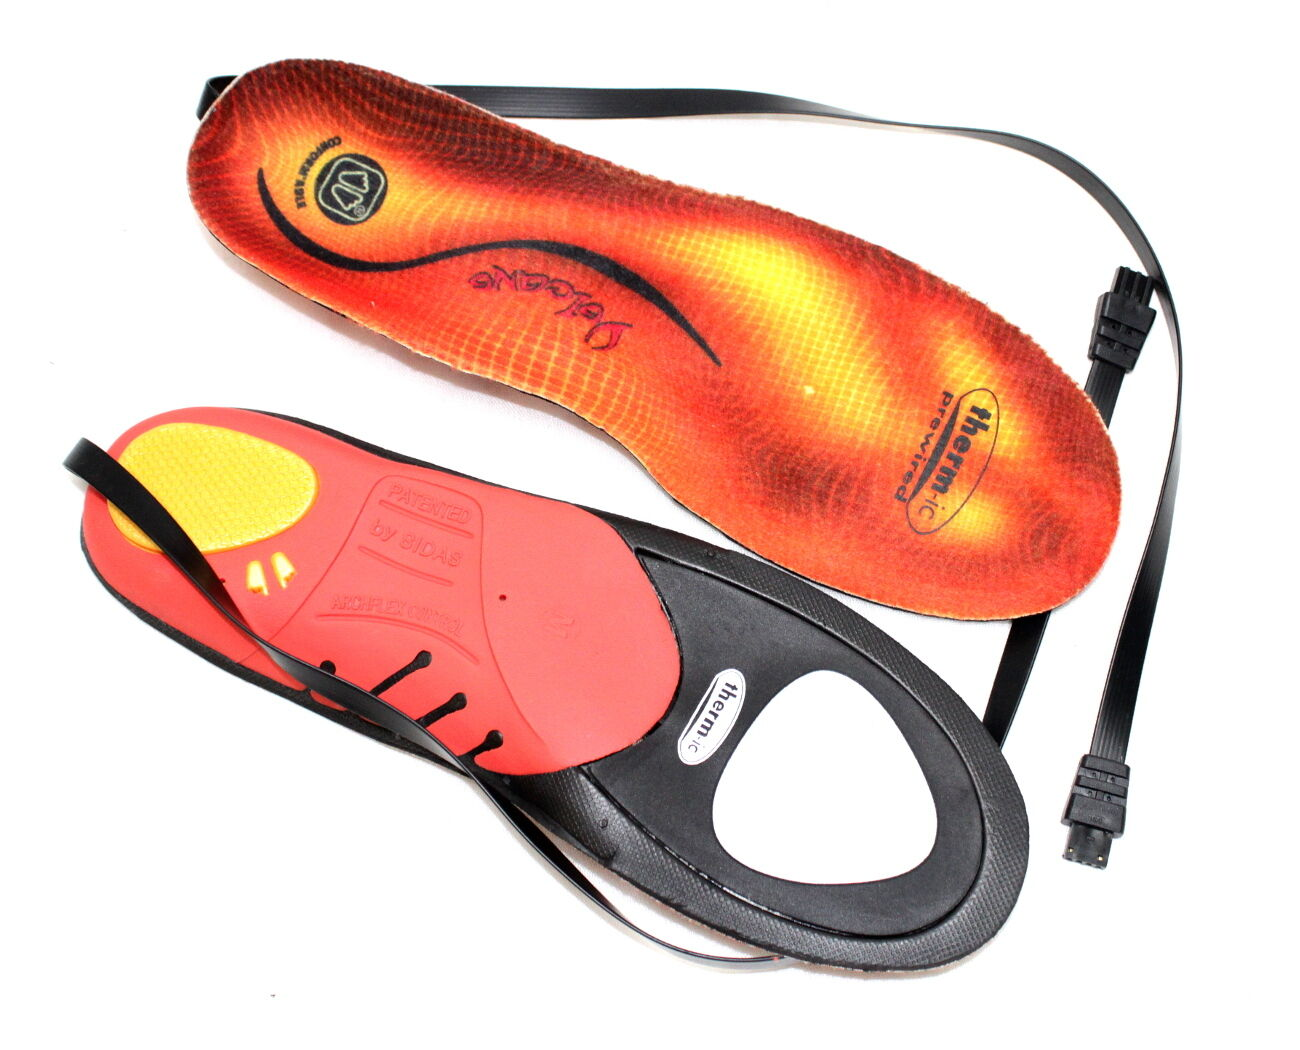 Sidas Conformable Inner Soles Therm-Ic Step in Volcano Insole shoes S-N 4